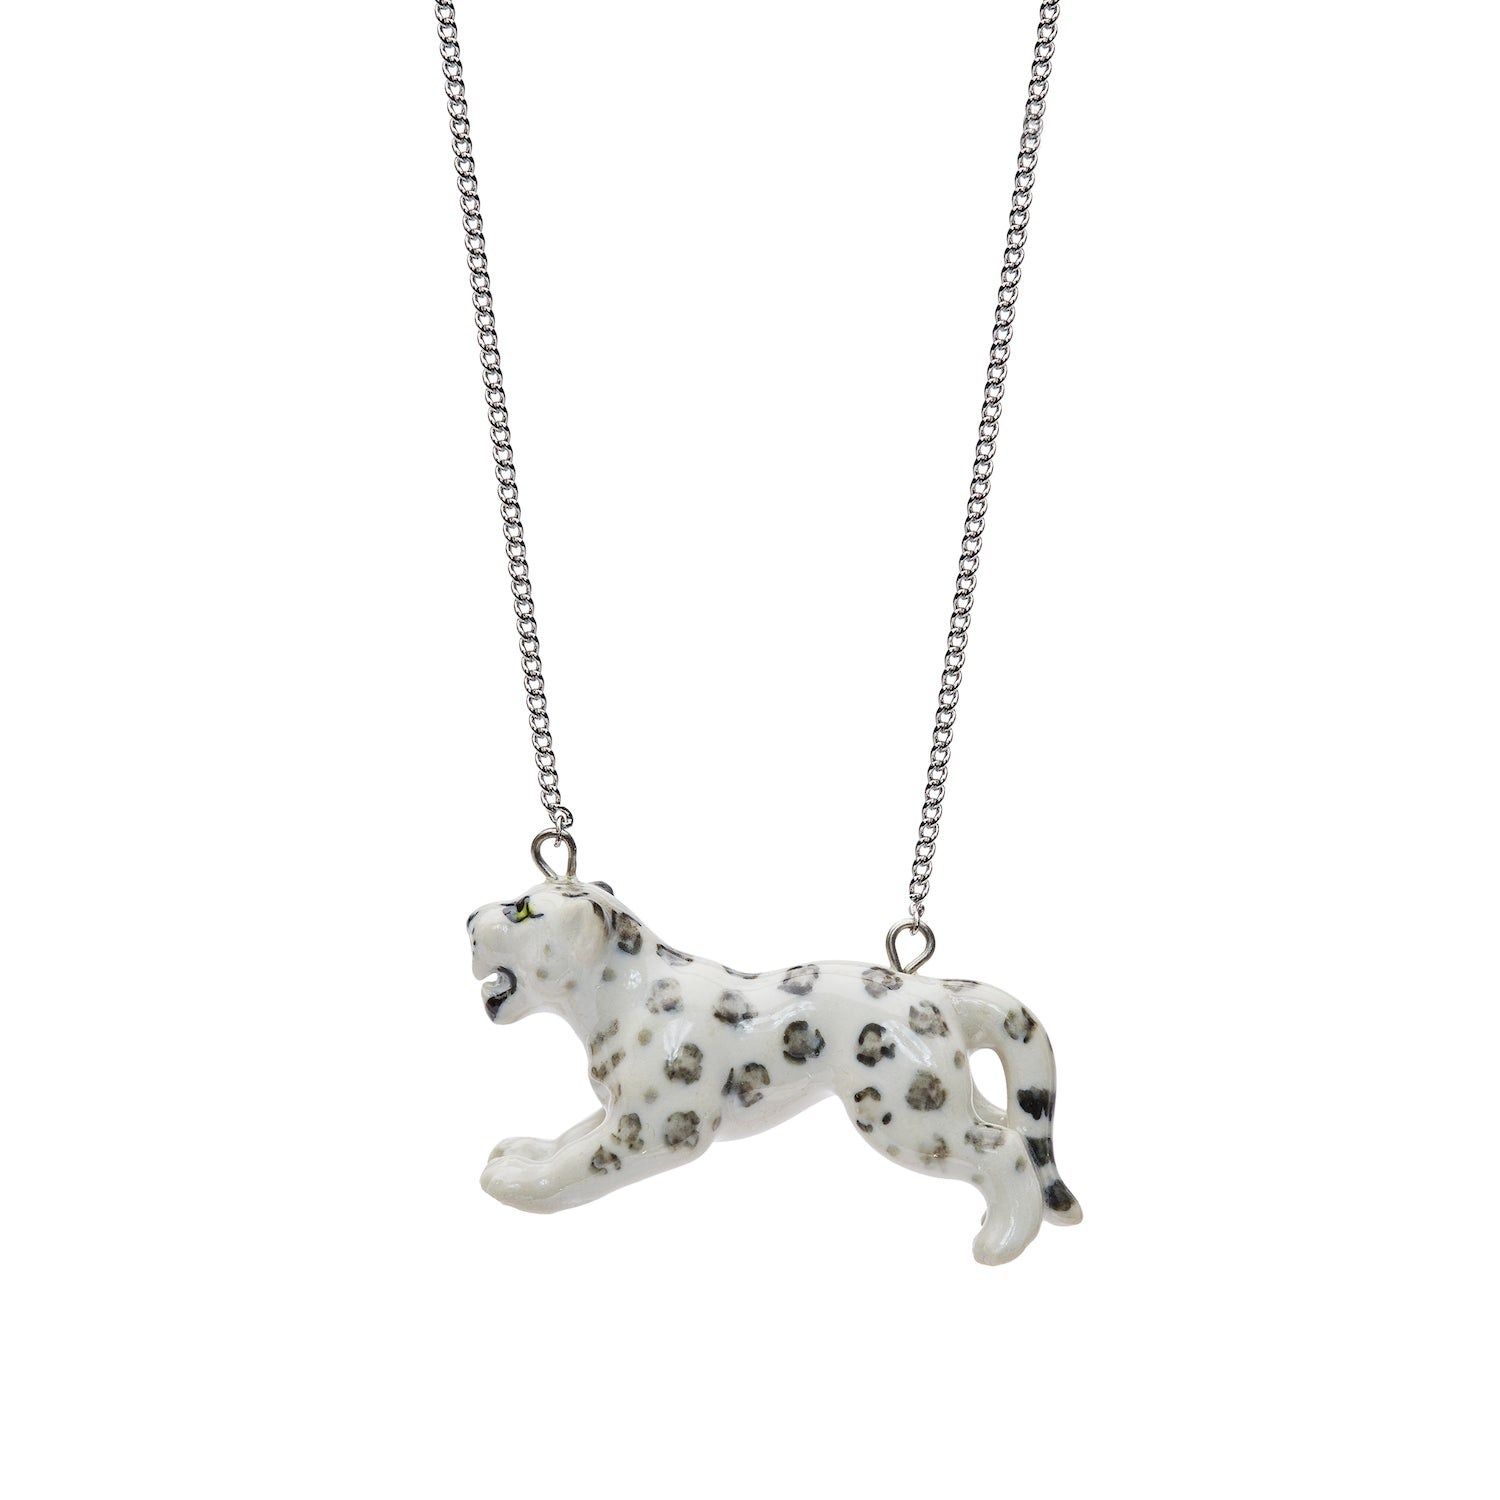 Leaping Snow Leopard Necklace